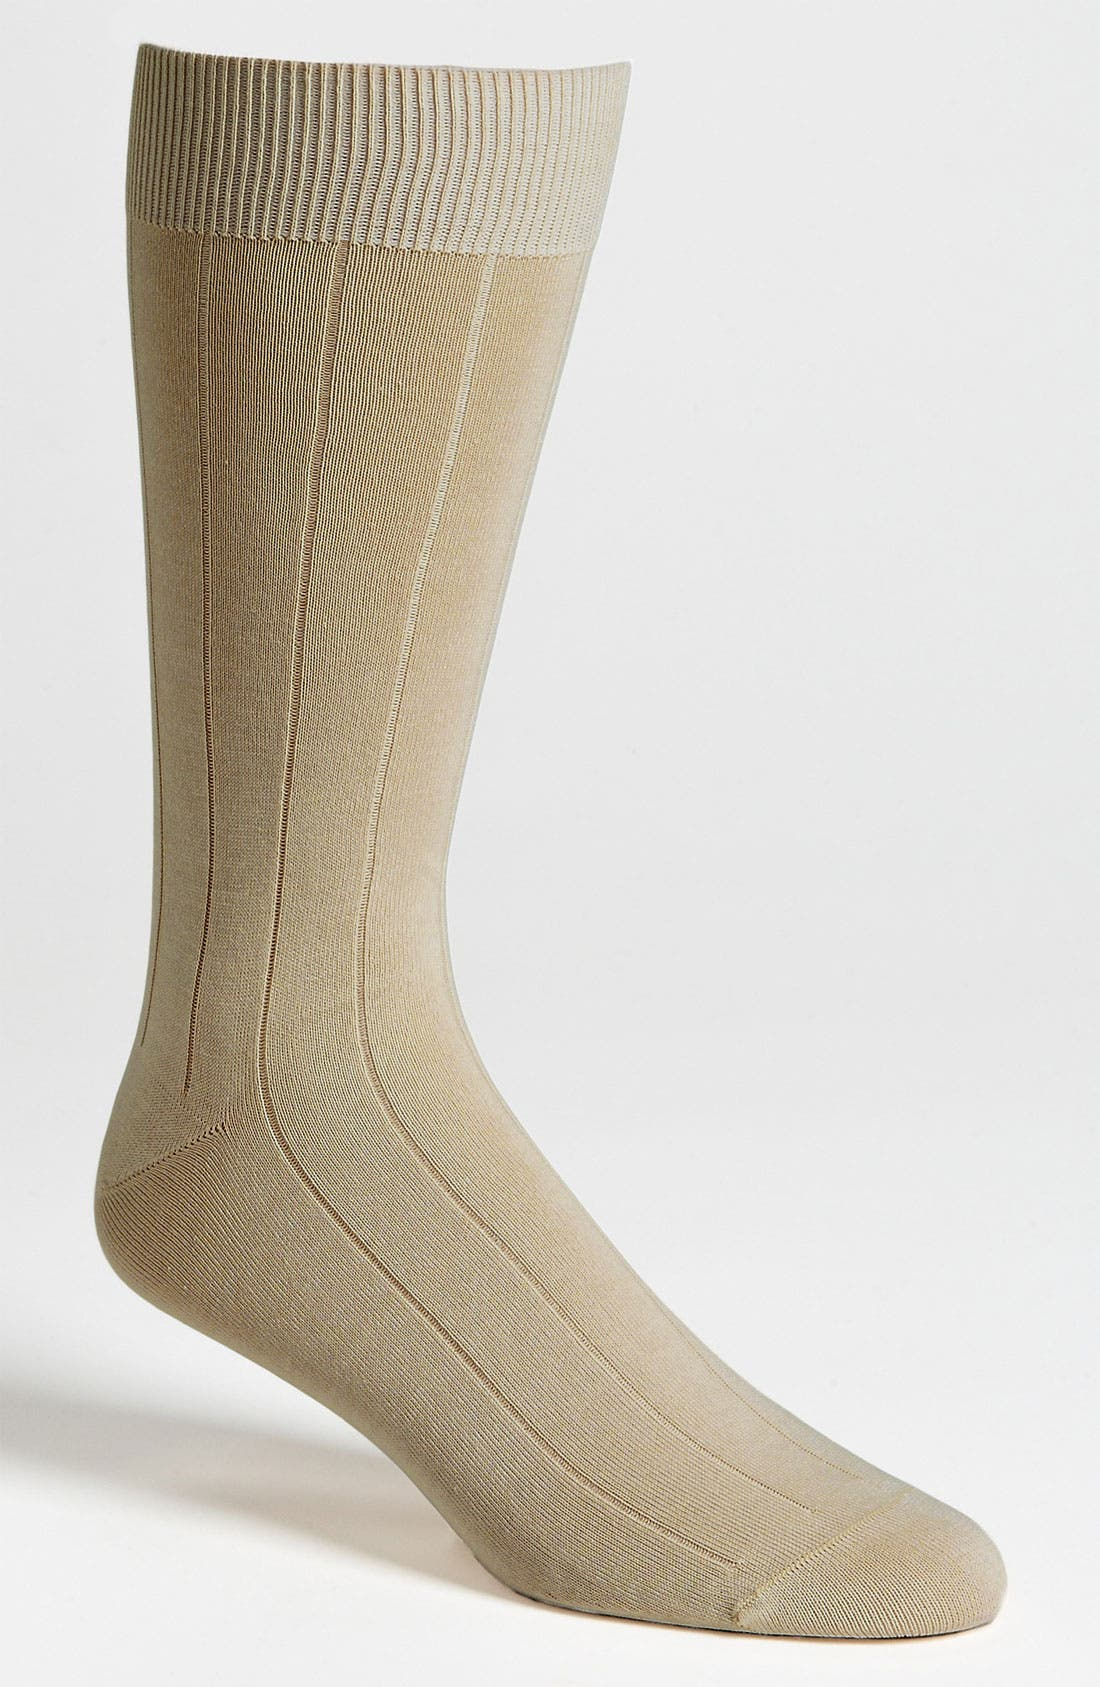 Alternate Image 1 Selected - Pantherella Sea Island Cotton Socks